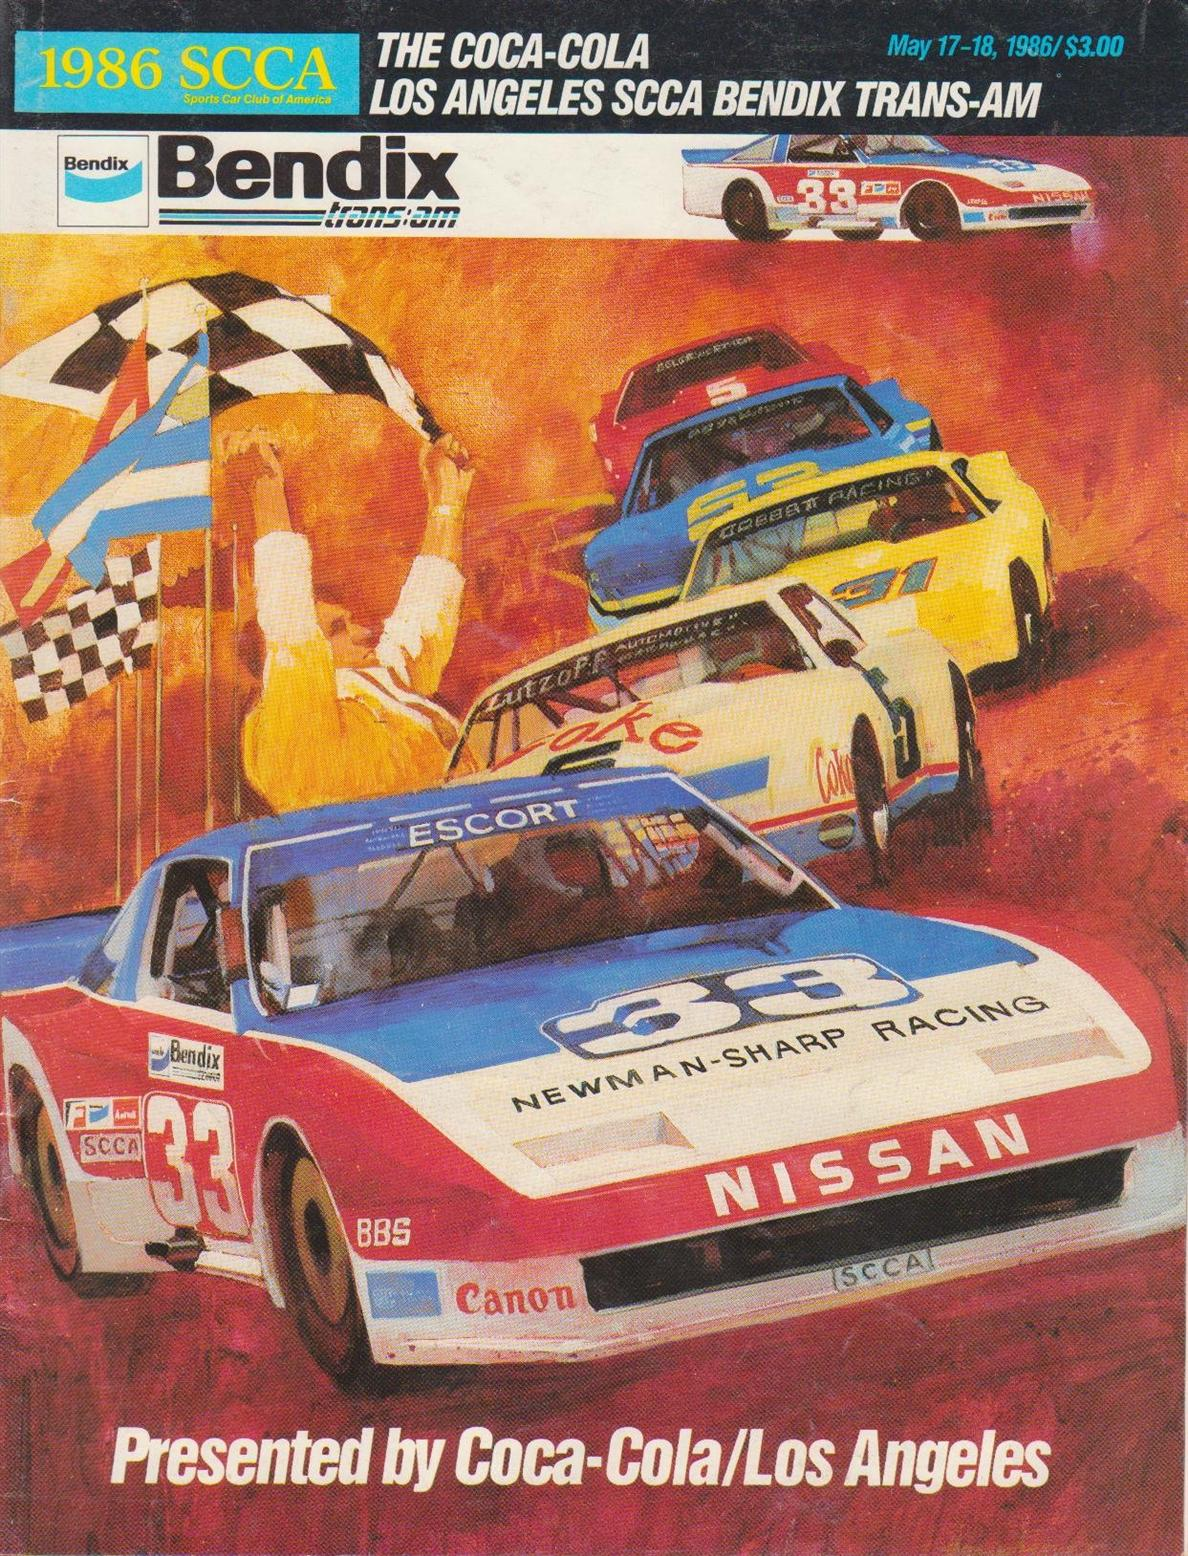 Mid Ohio Raceway >> 1986 Trans-Am Series Programmes | The Motor Racing Programme Covers Project